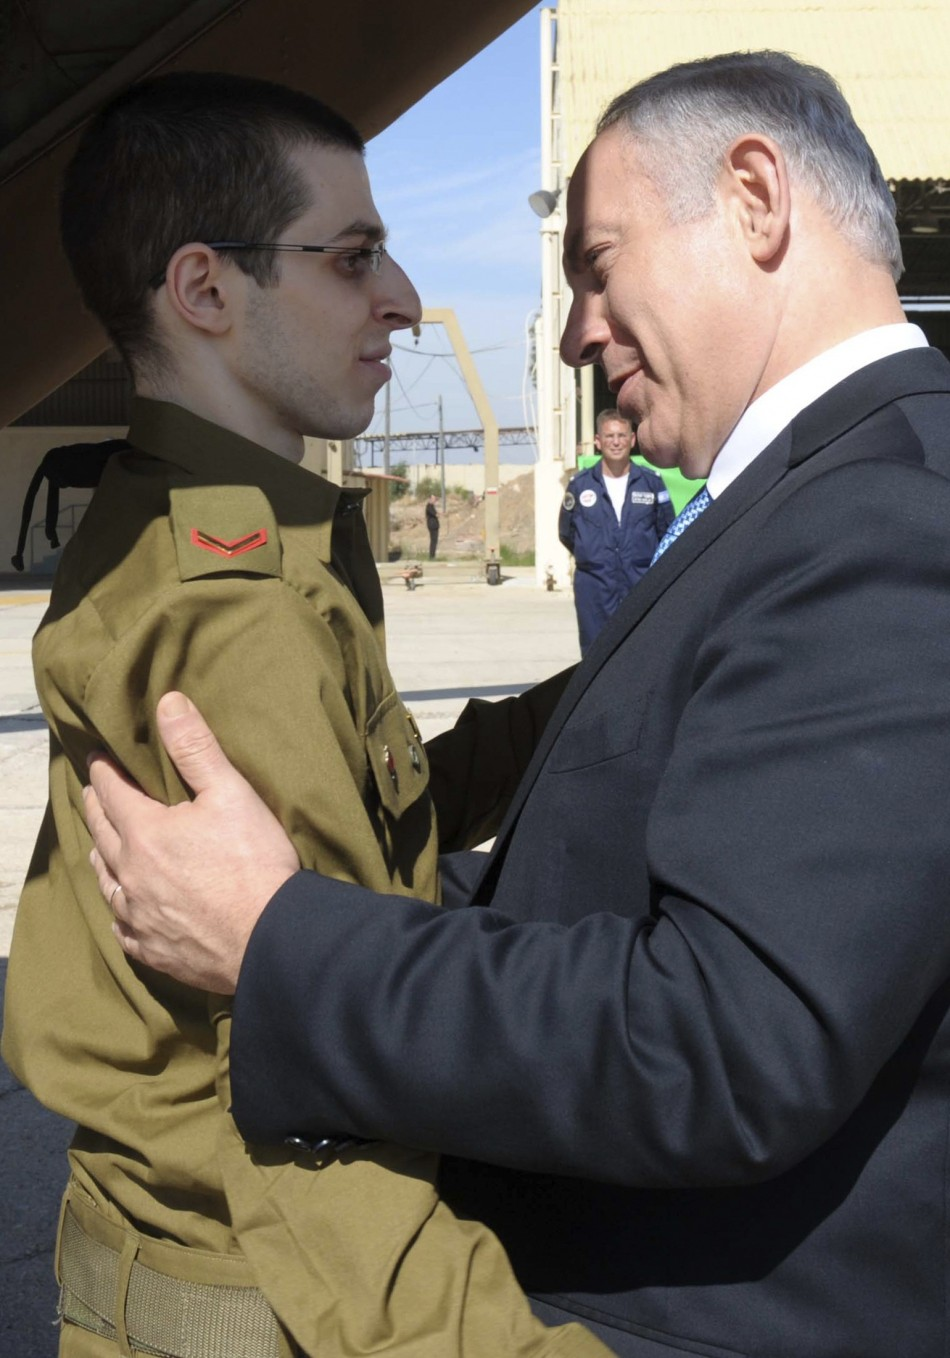 Israel's Prime Minister Benjamin Netanyahu (R) greets Israeli soldier Gilad Shalit at Tel Nof air base in central Israel in this handout picture released October 18, 2011 by the Israeli Government Press Office (GPO).